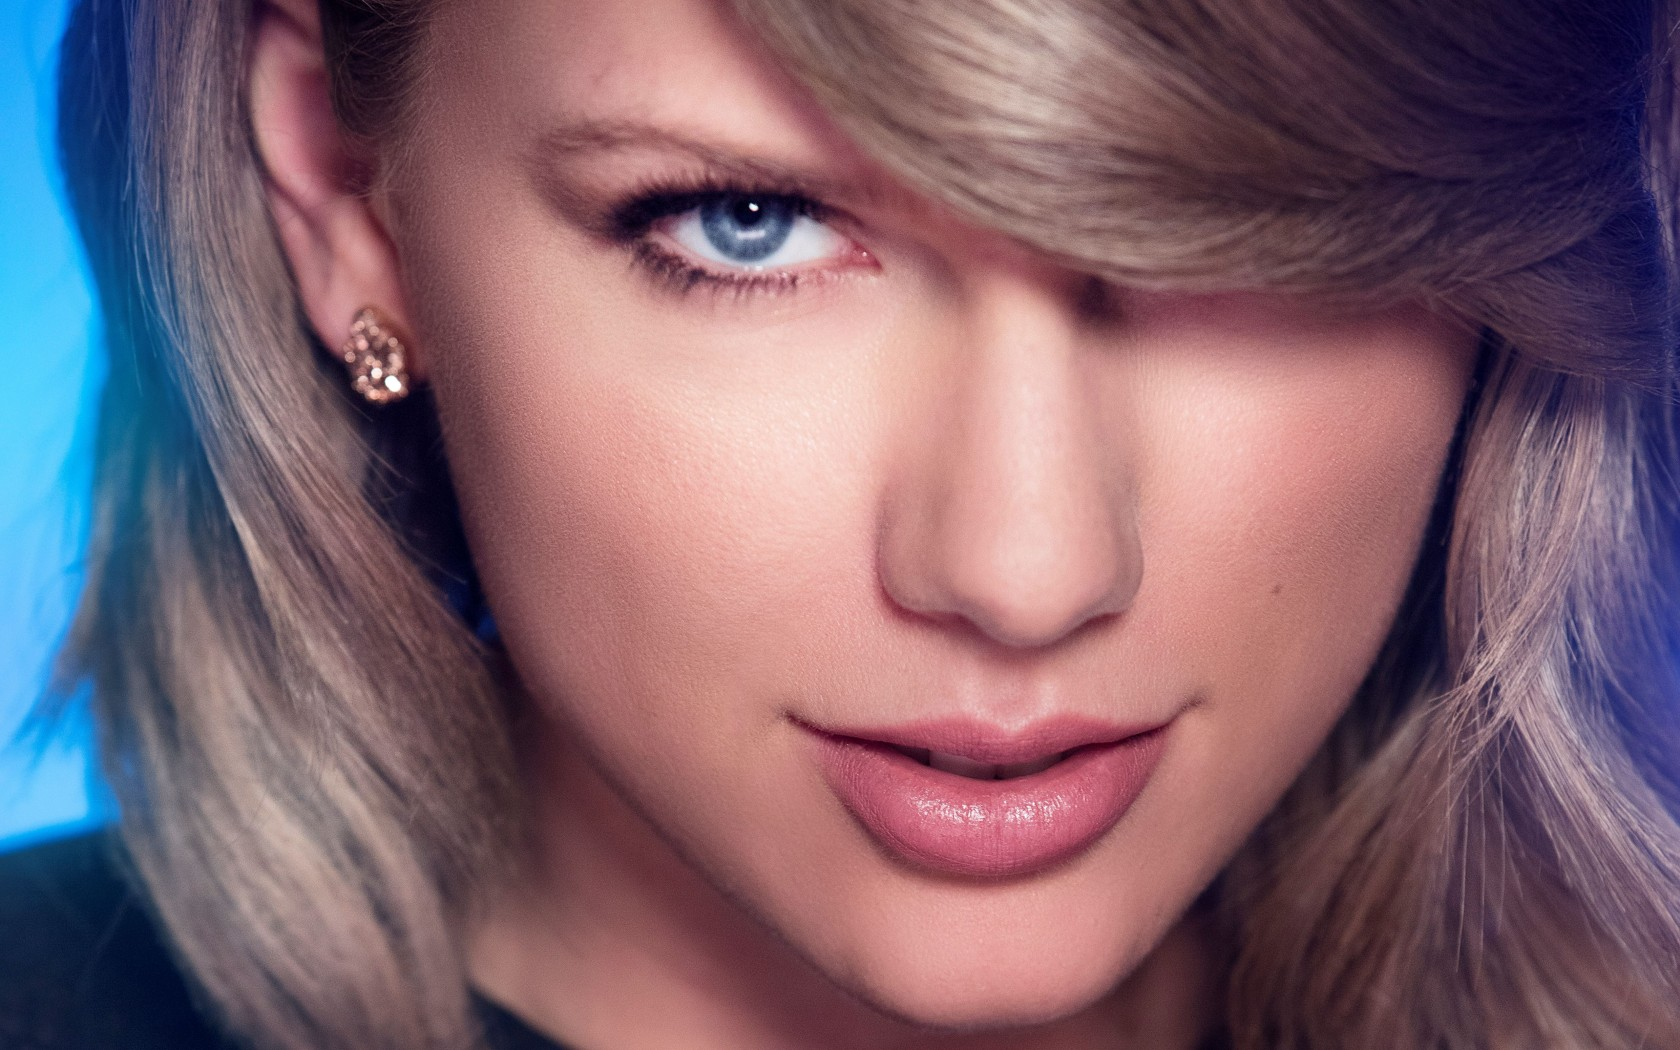 Abstract Girl Face Wallpaper Taylor Swift 5k Wallpapers Hd Wallpapers Id 19050